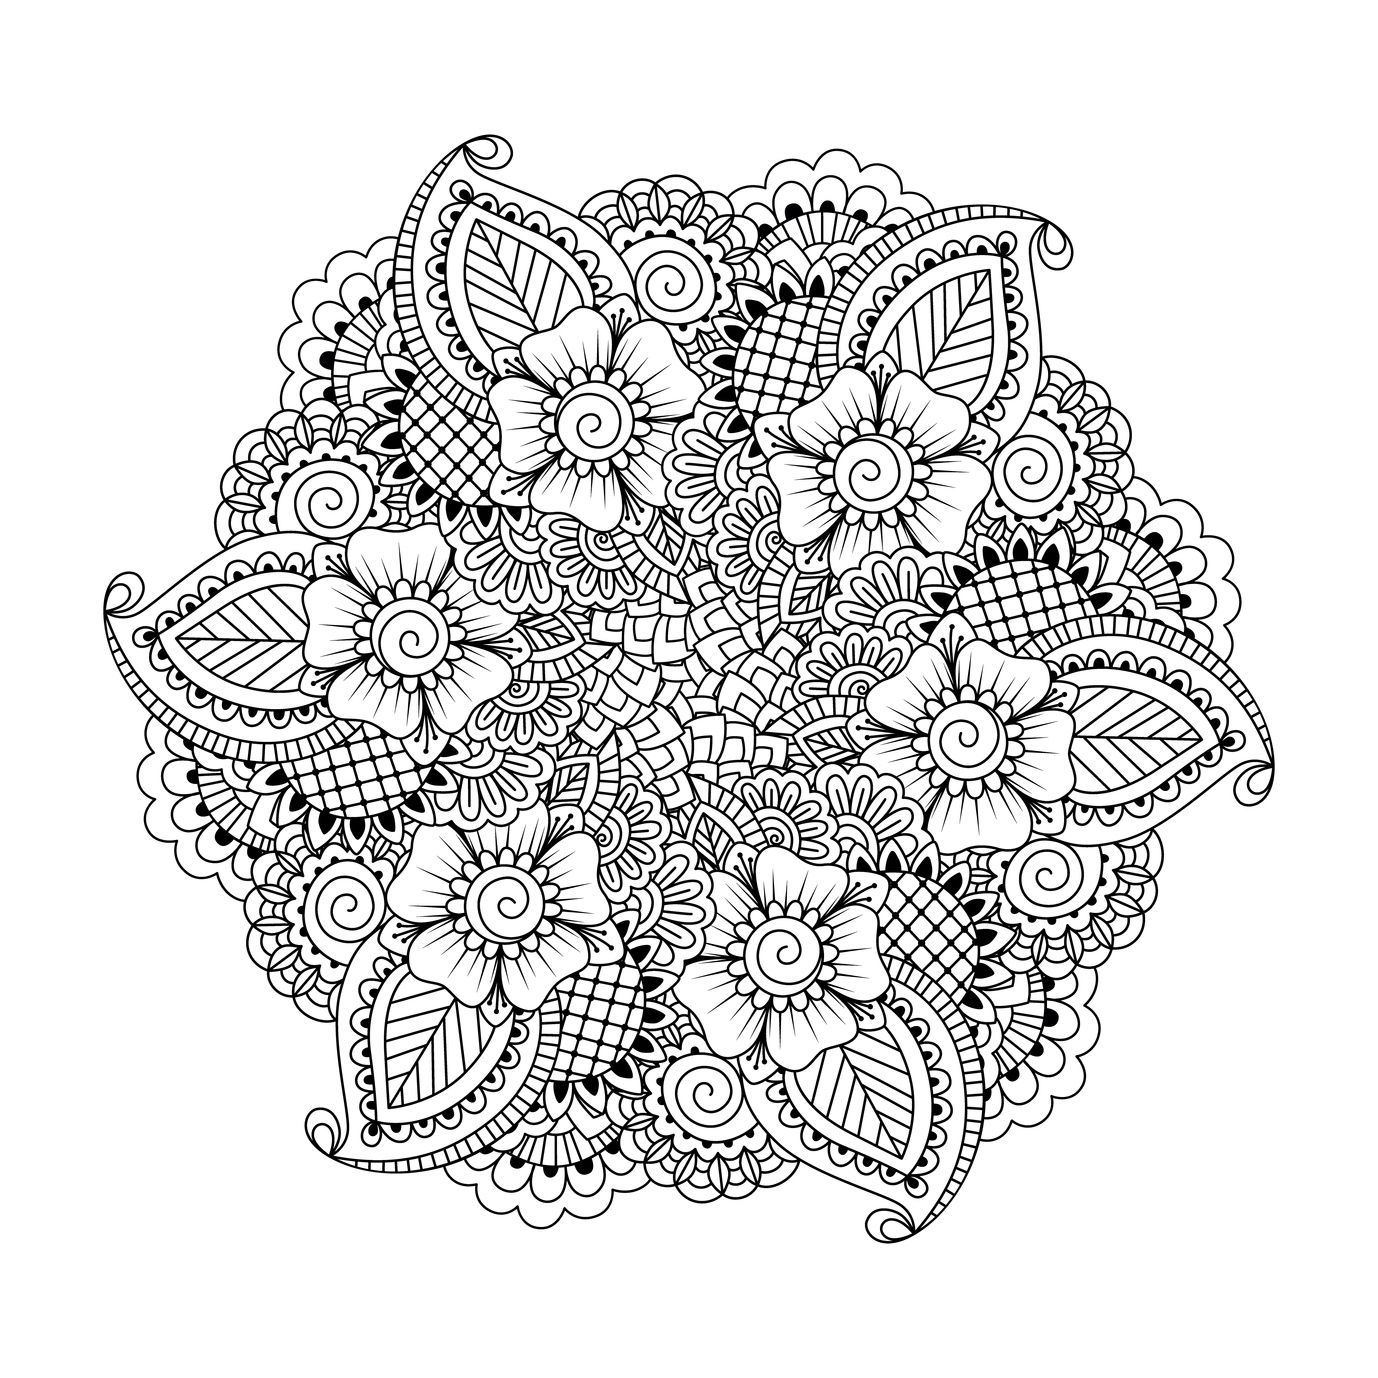 These Printable Abstract Coloring Pages Relieve Stress And Help You ...